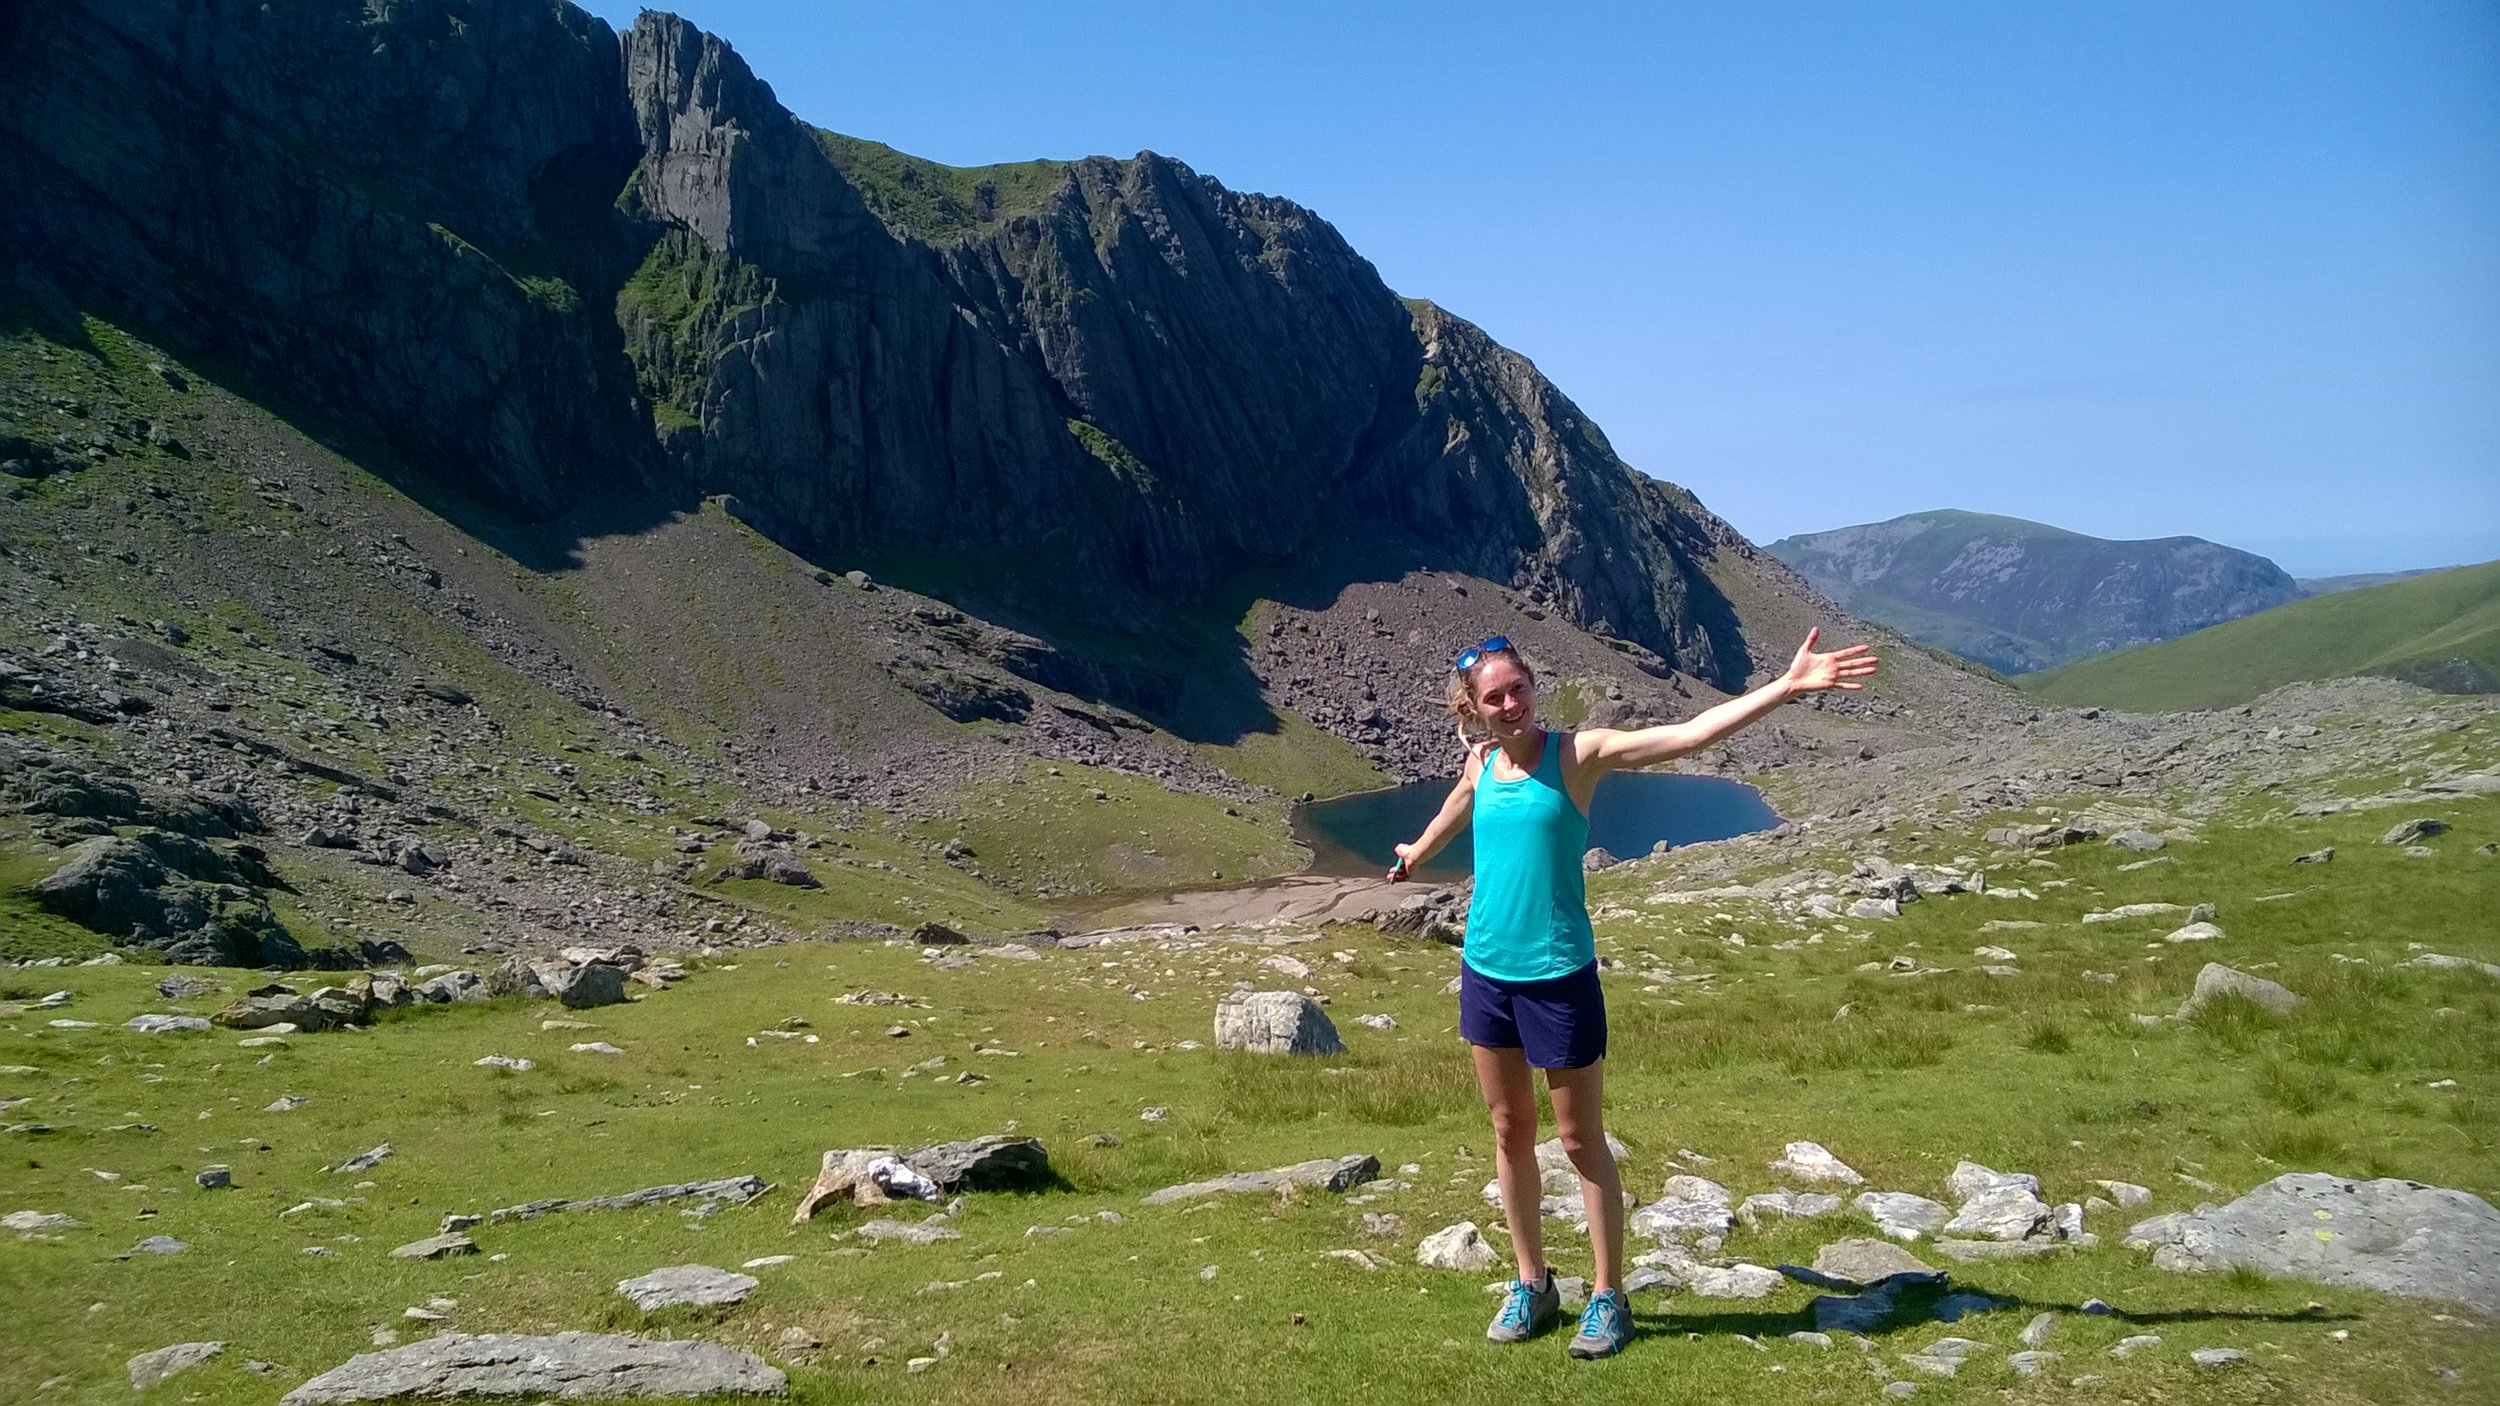 Katy and glorious Cloggy, North Wales